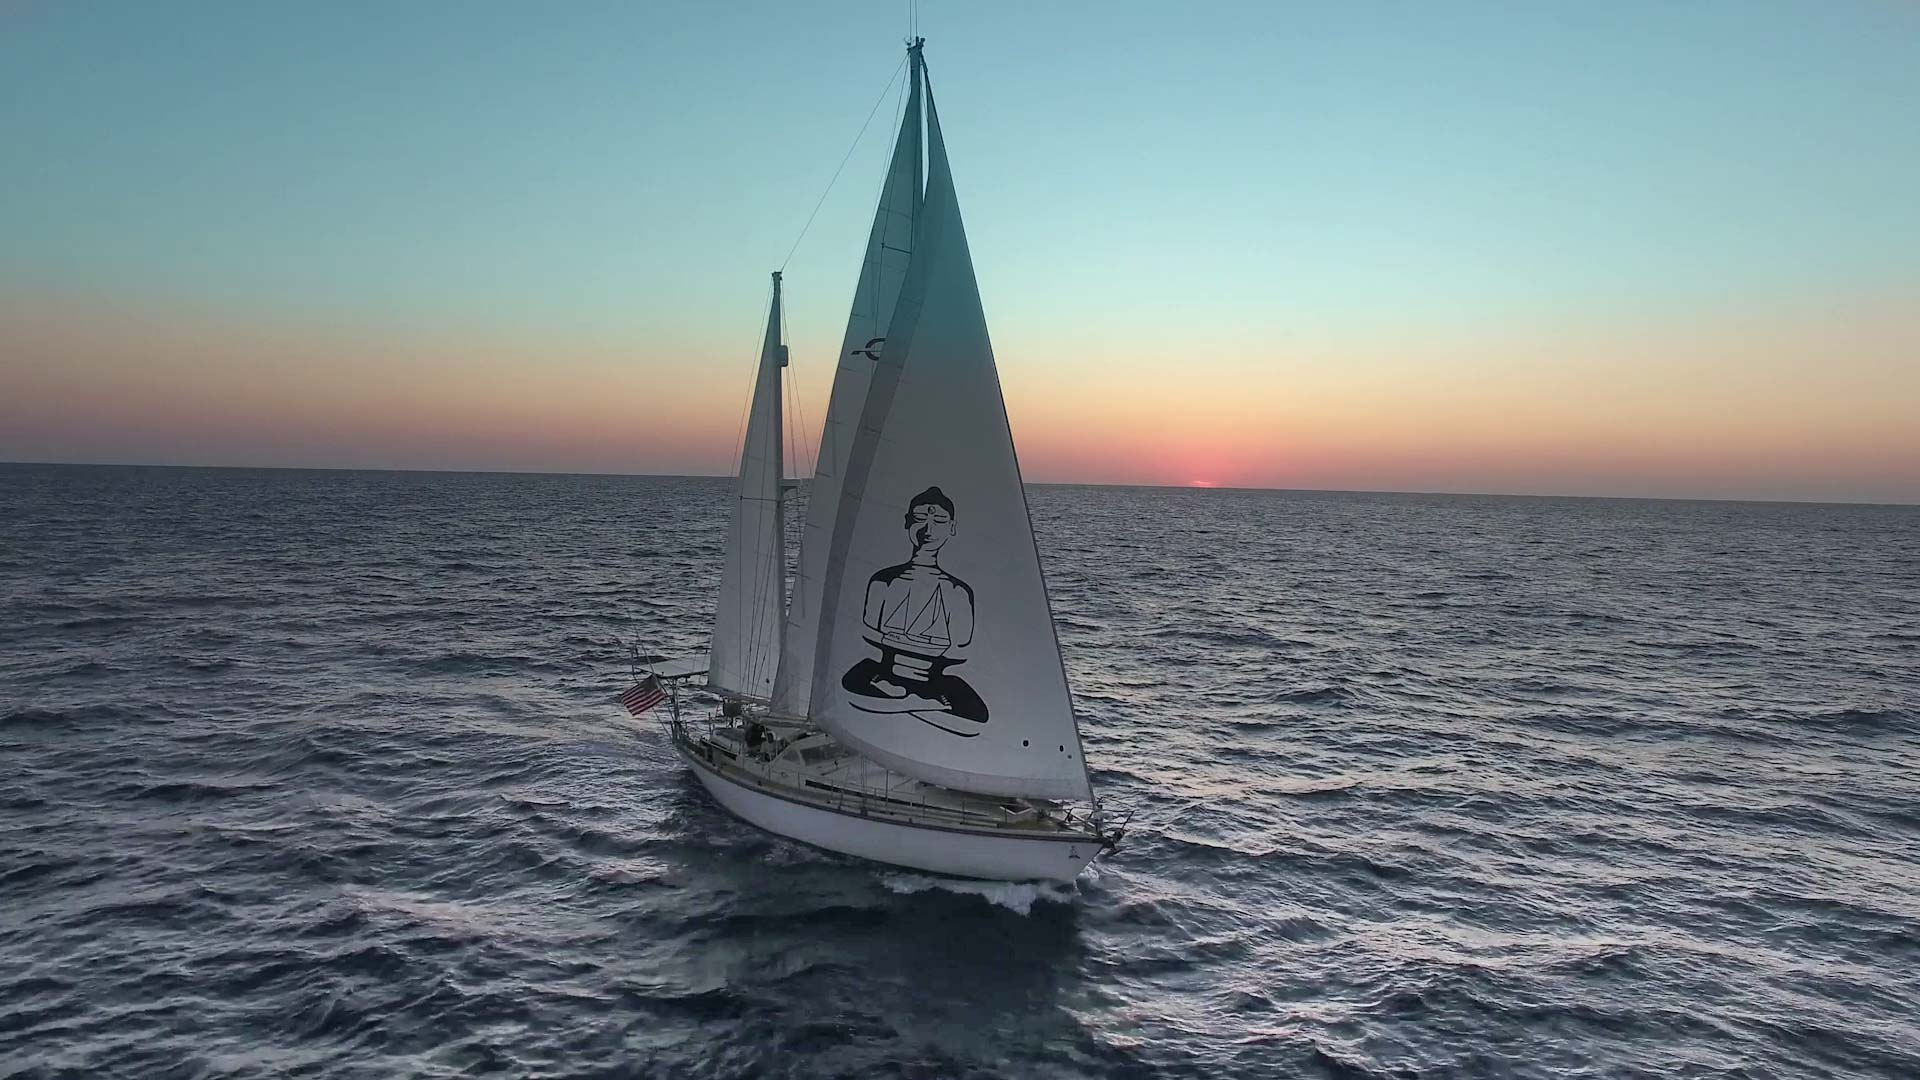 Delos-Sailing-From-Drone